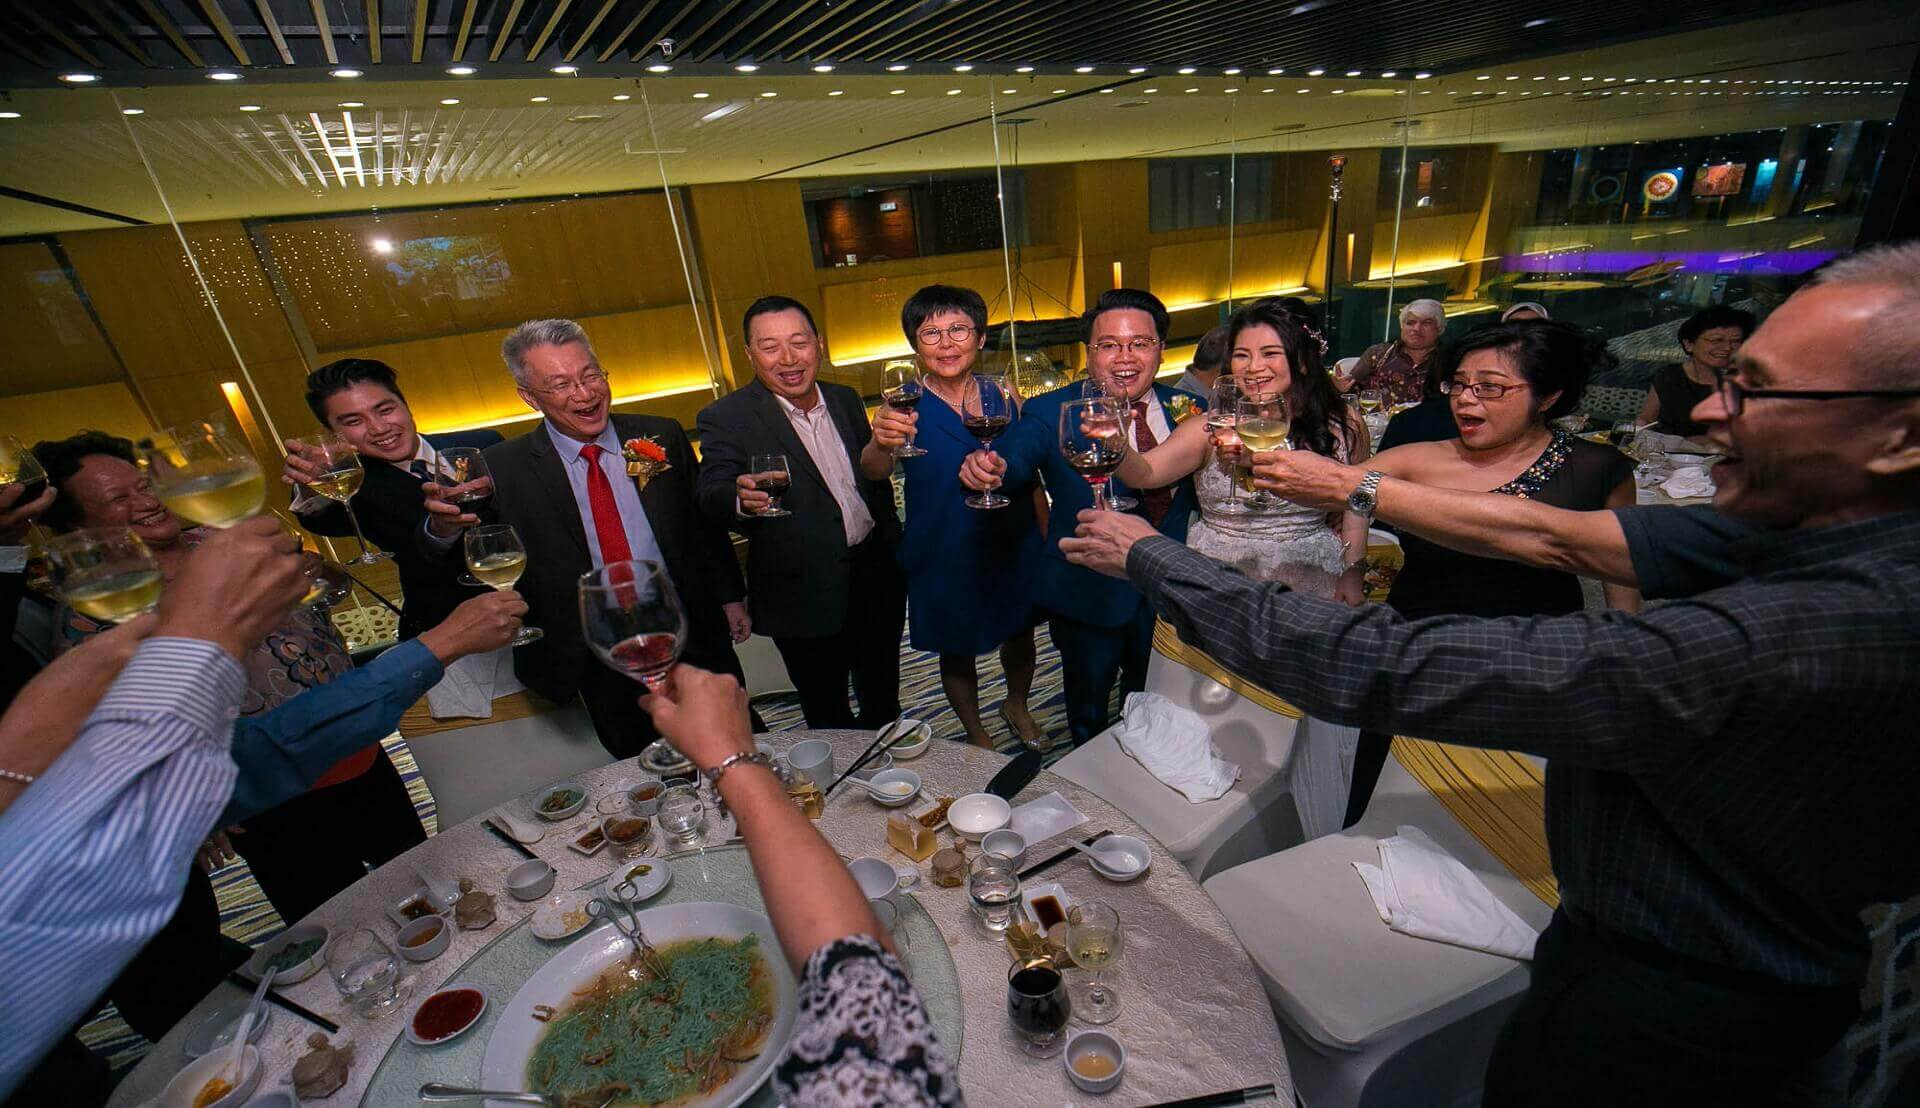 Sugar & Spice Events - Wedding banquet toasting the newly wed couple